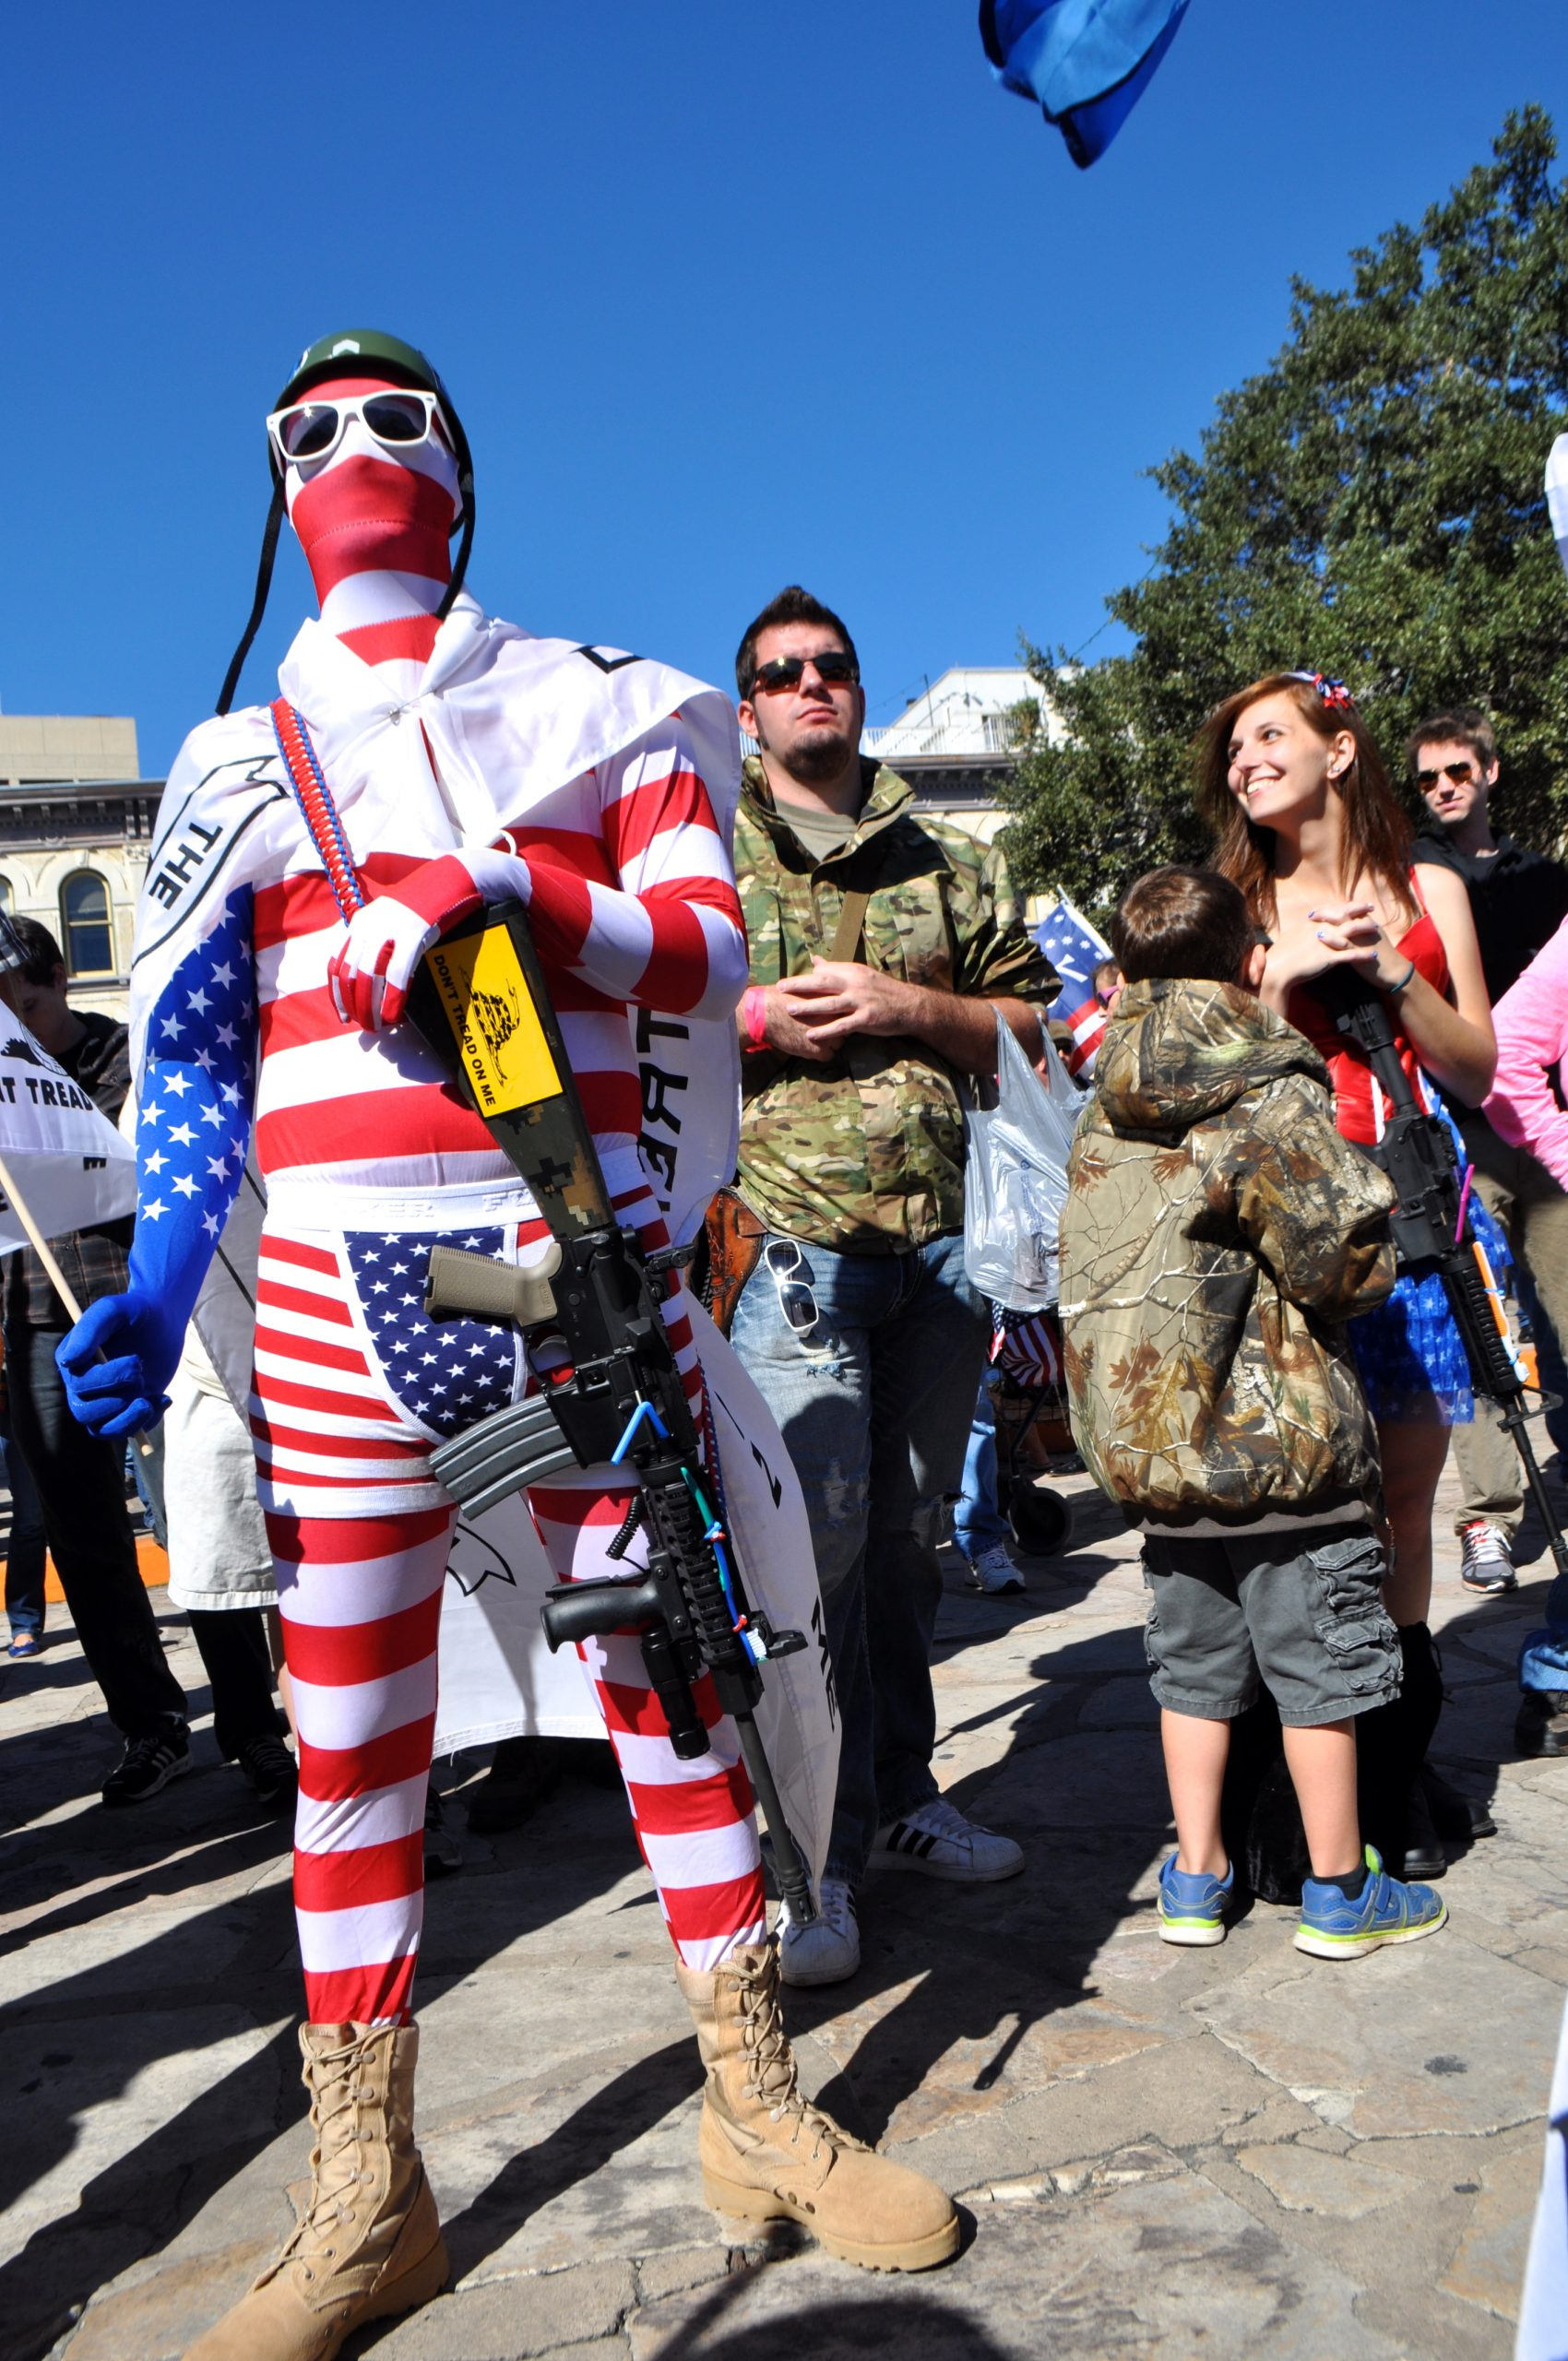 """""""Captain America"""" at the gun rally in Alamo Plaza. Photo by Iris Dimmick."""